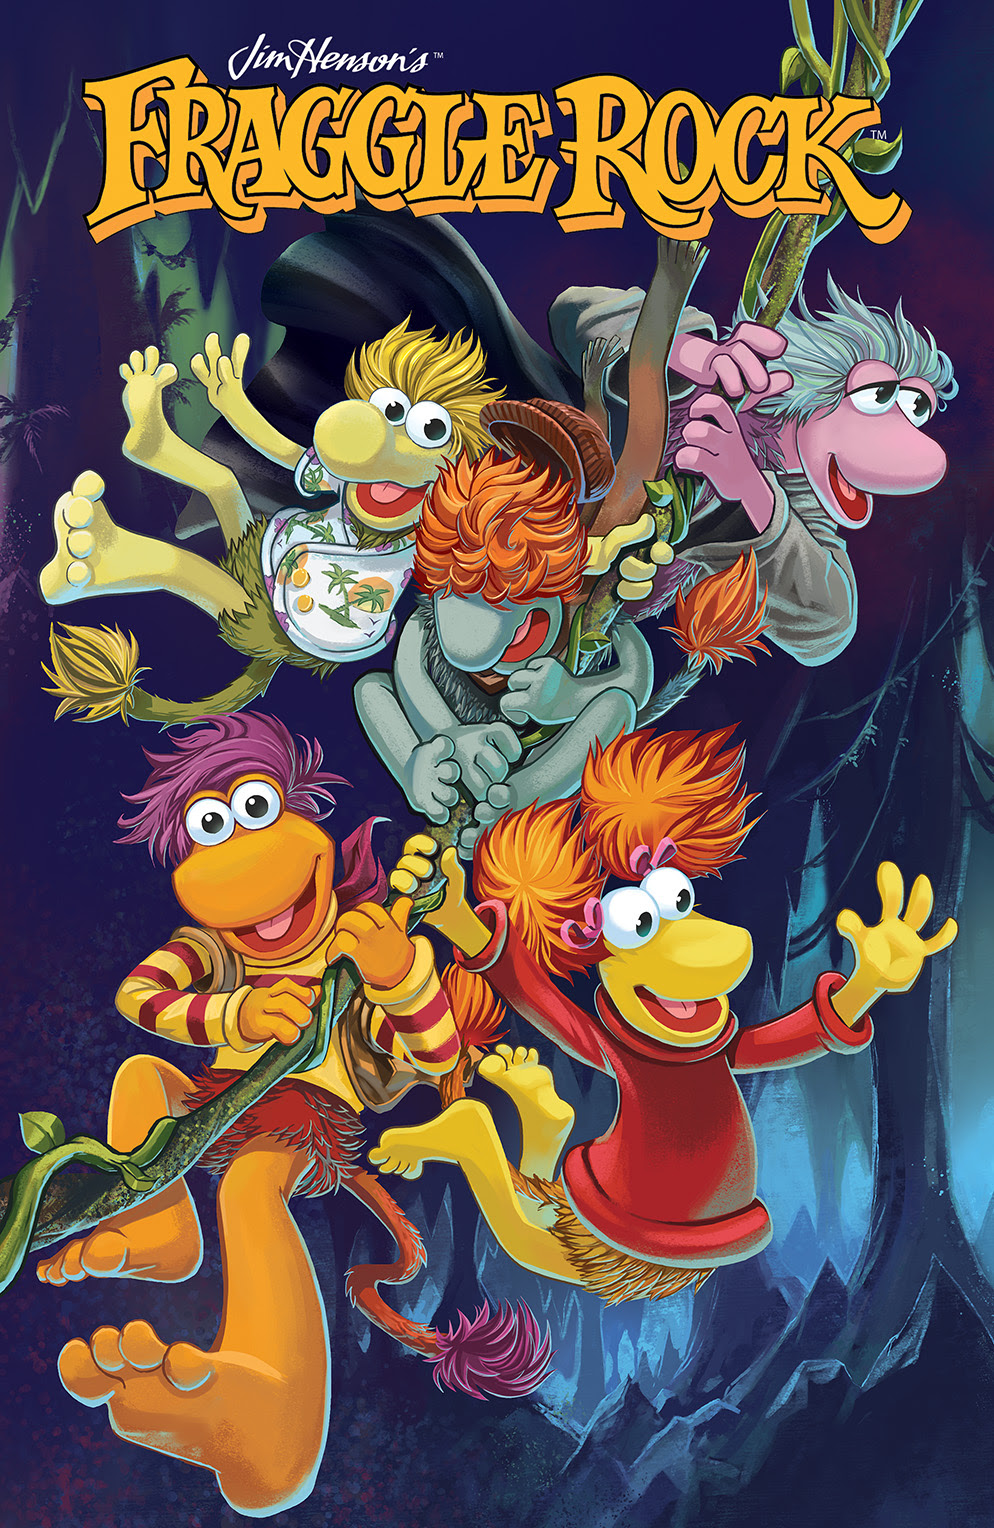 Fraggle Rock: Journey to the everspring